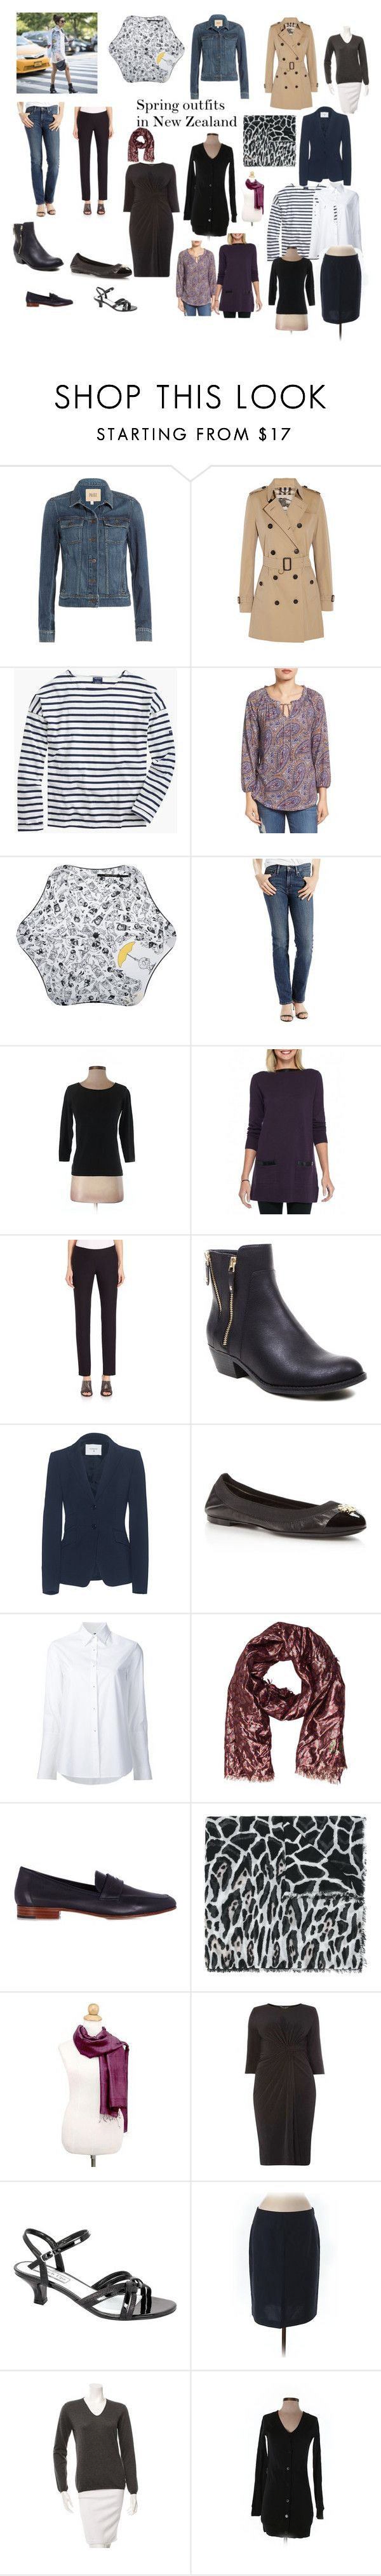 Spring wardrobe for New Zealand by lyn-mowles on Polyvore featuring Dorothy Perkins, Jeanne Pierre, Saint James, LOFT, Misha Nonoo, malo, Lucky Brand, Burberry, Dondup and Paige Denim